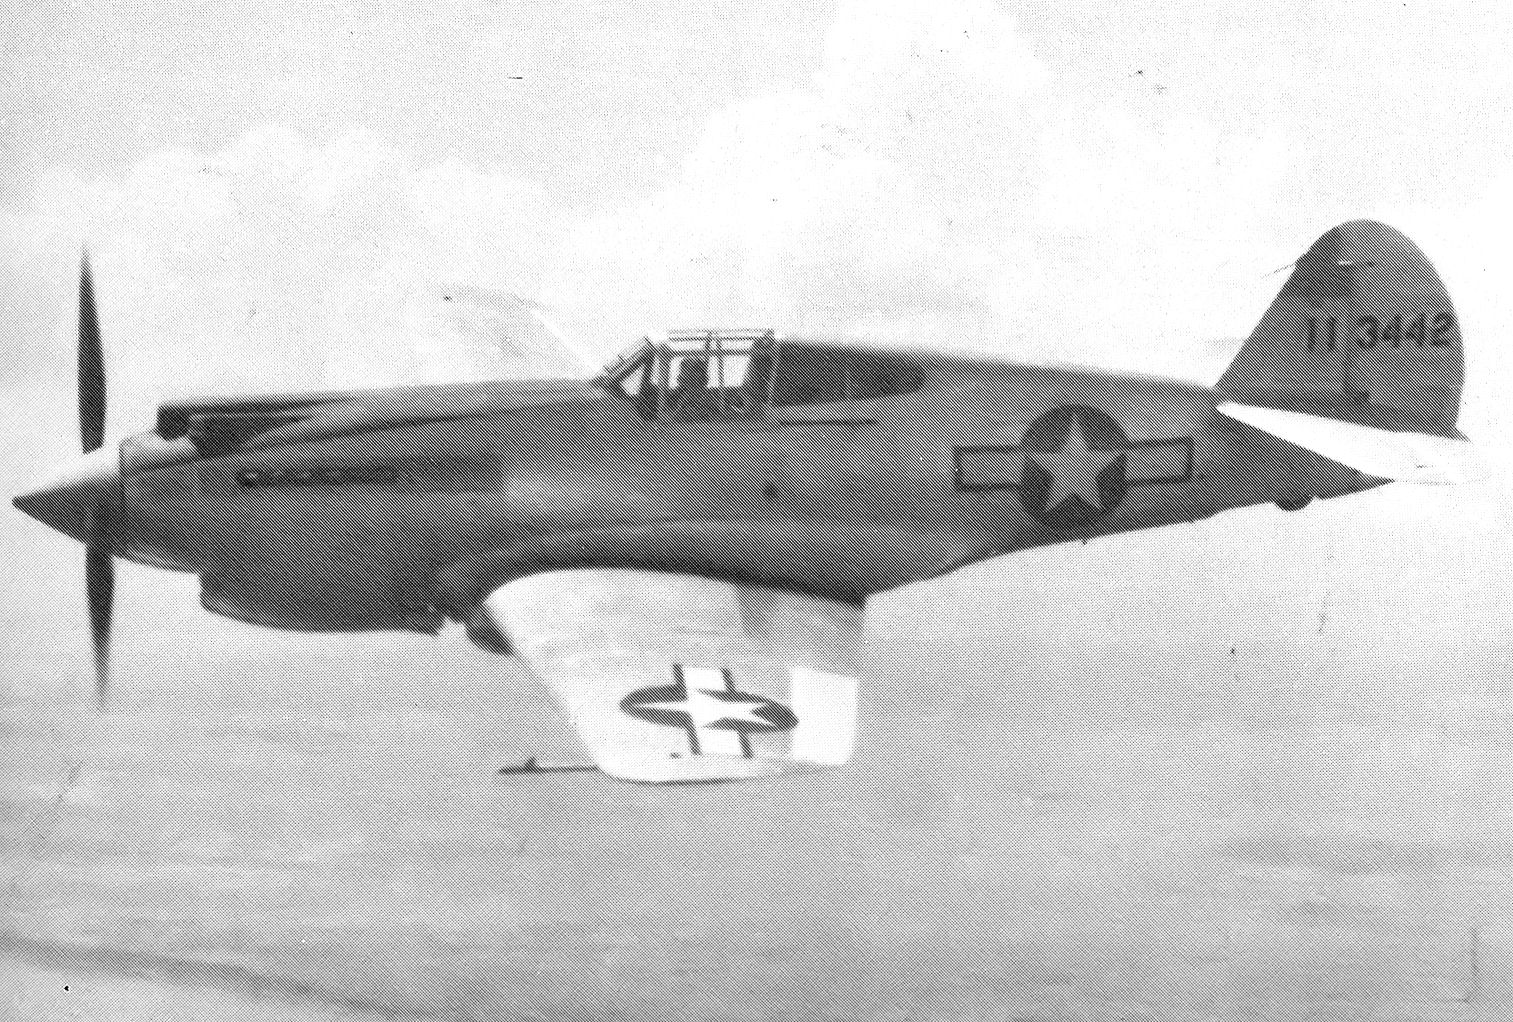 51st_Fighter_Squadron_Curtiss_P-40C_41-13442